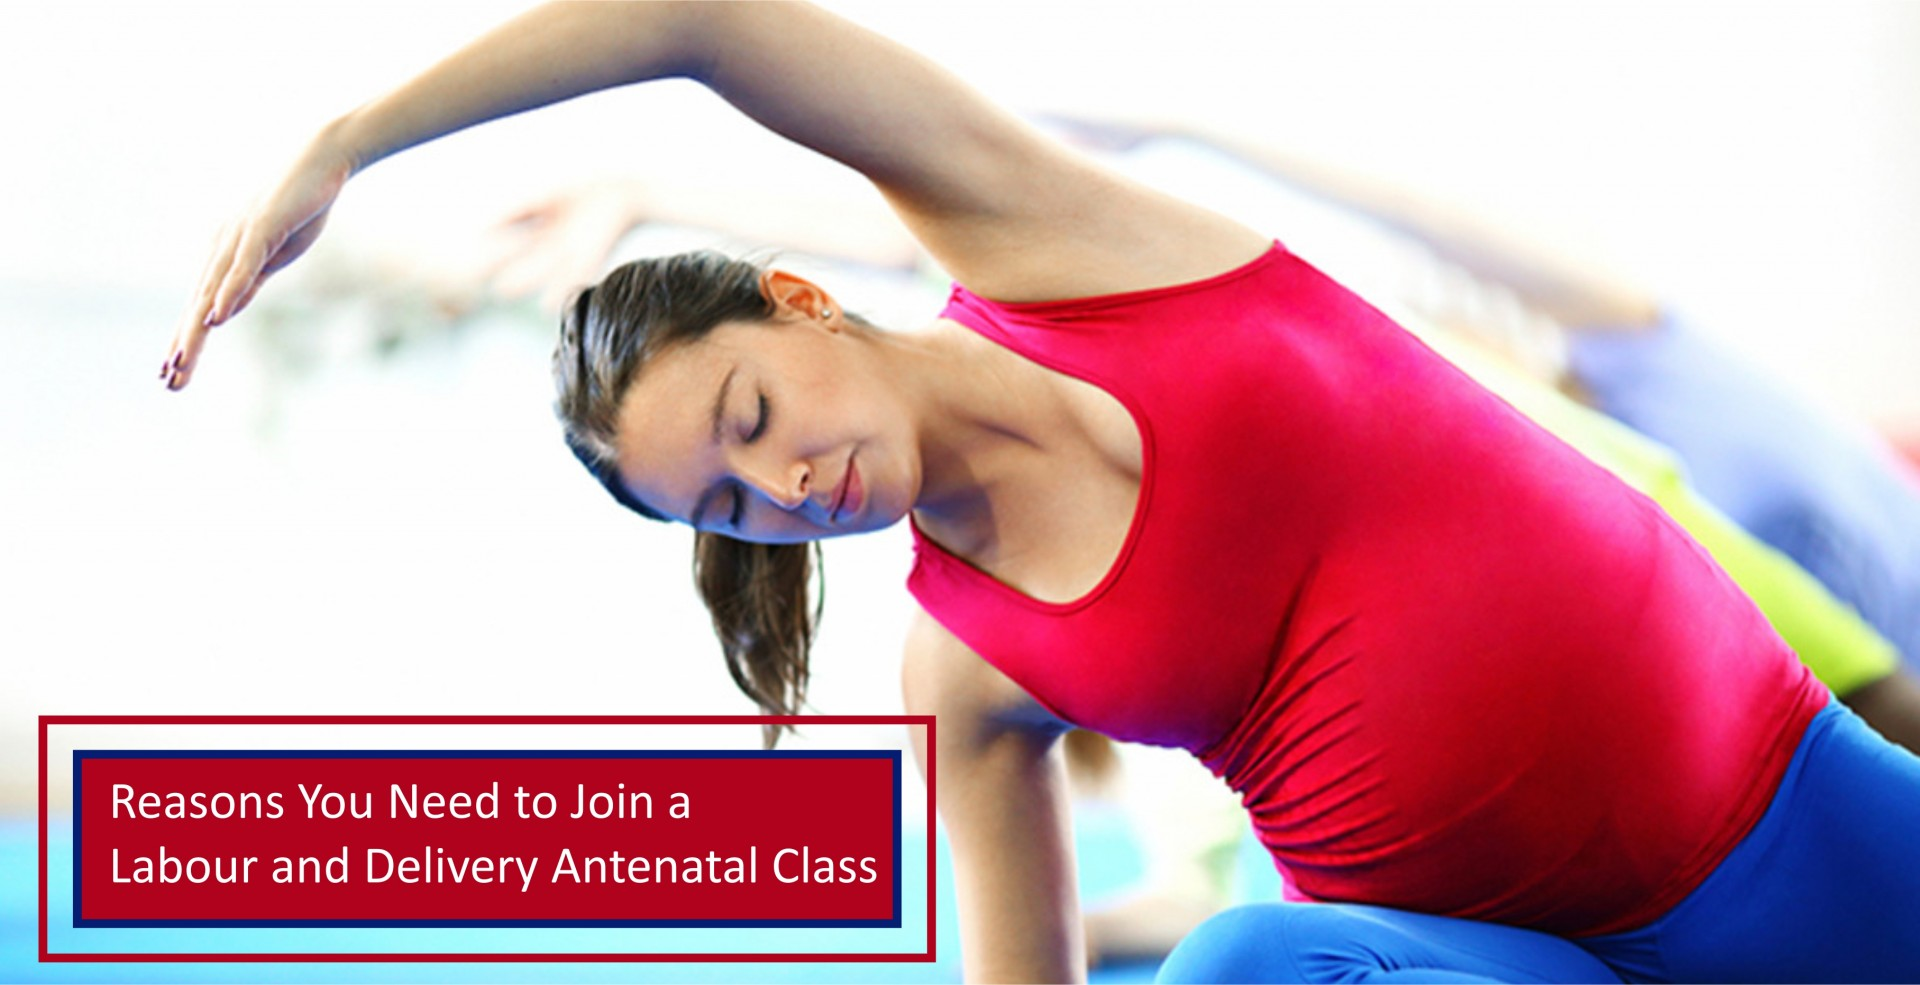 Reasons You Need to Join a Labour and Delivery Antenatal Class